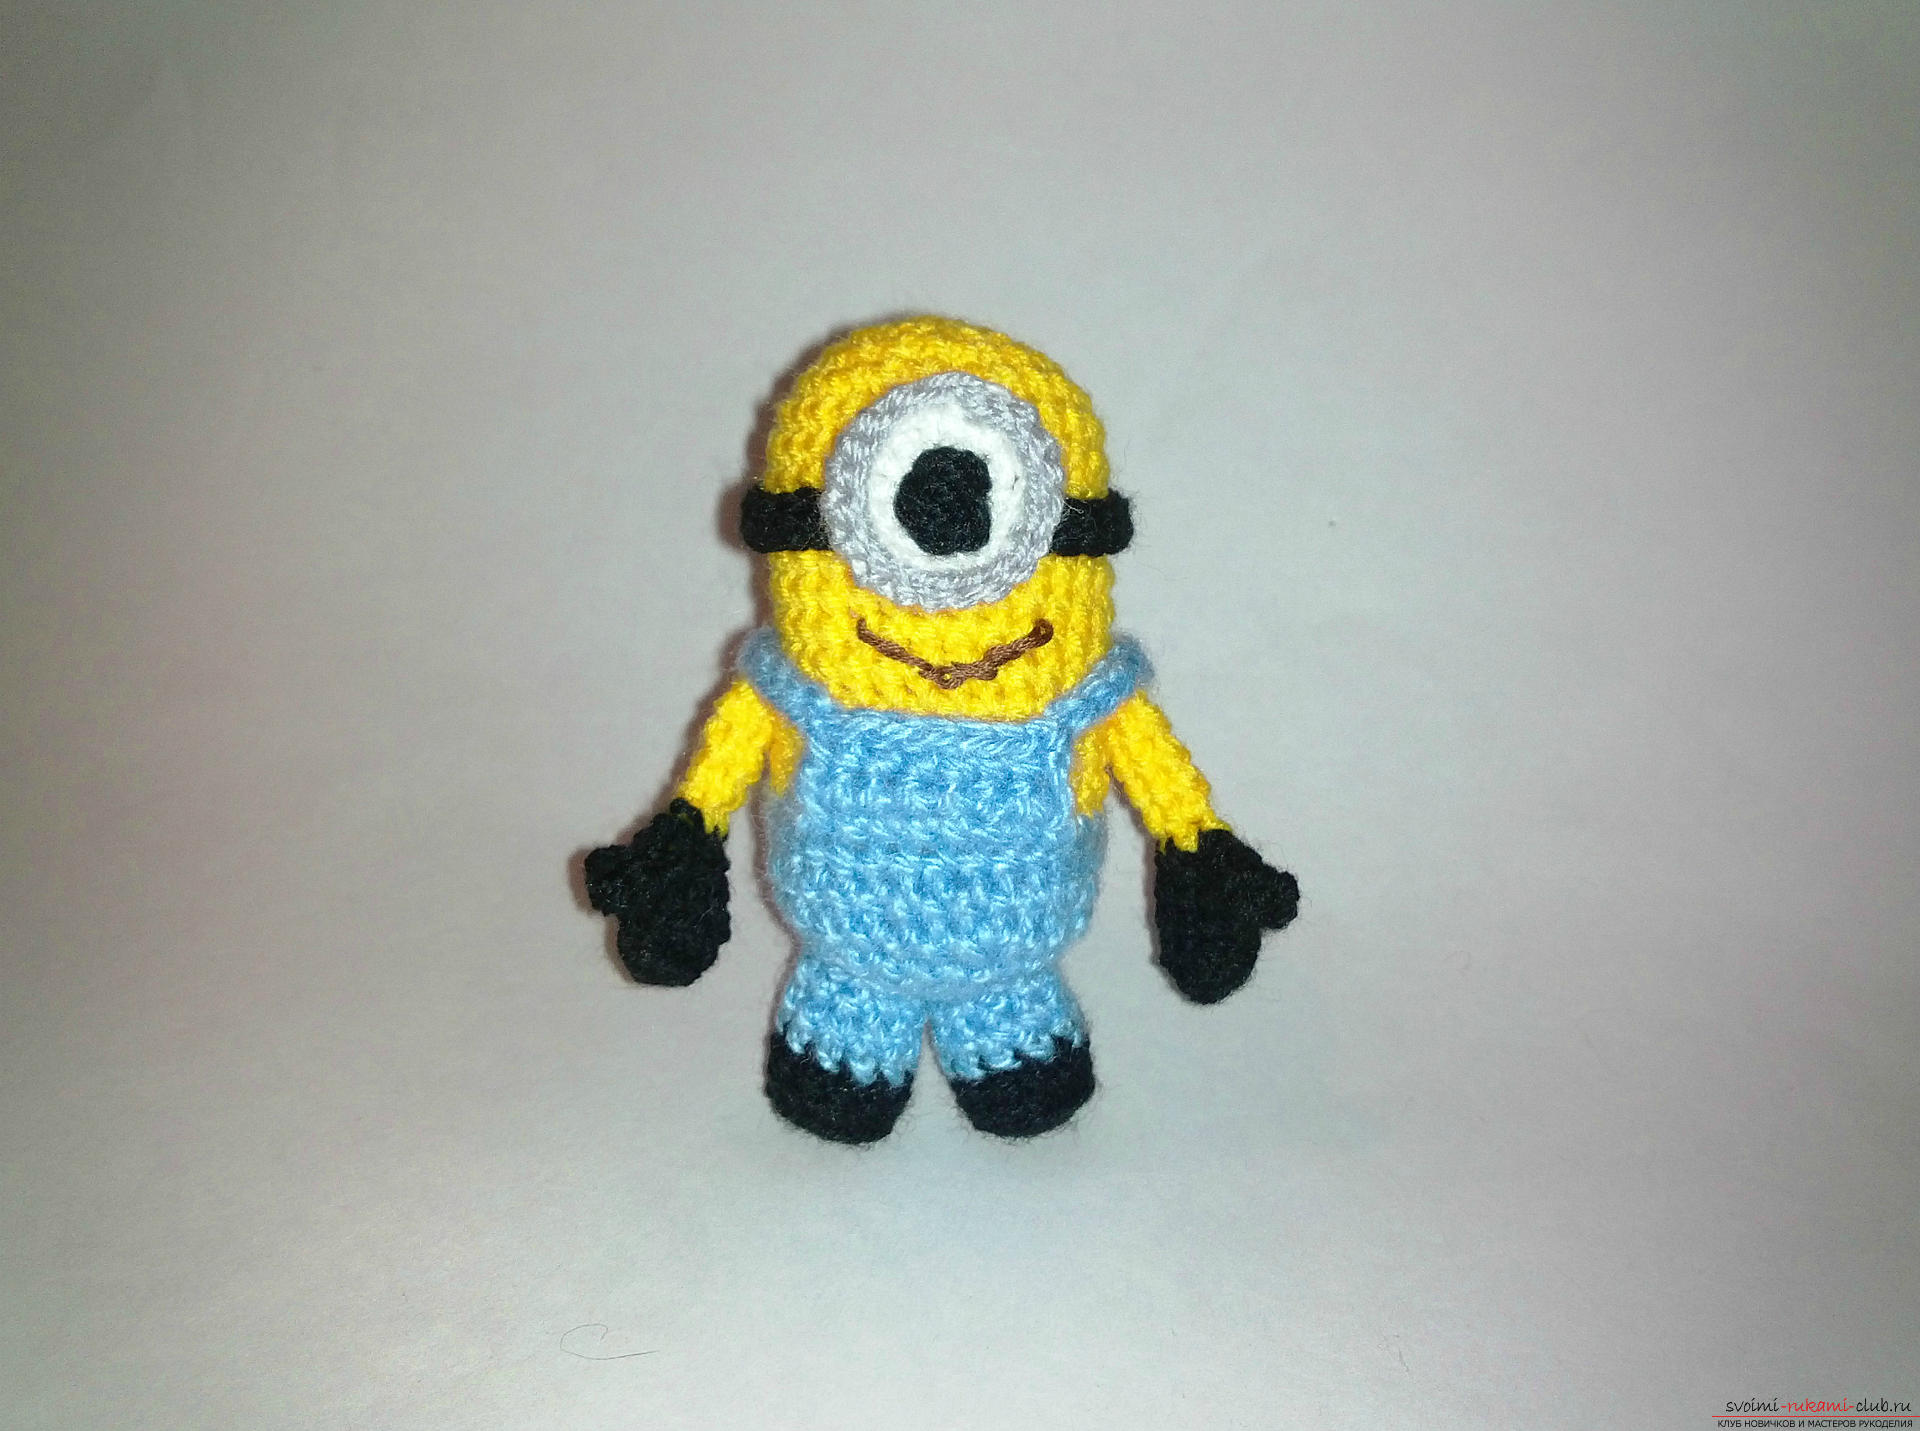 A master class with detailed photos and a step-by-step description will teach you how to crochet a minion toy. Photo №1